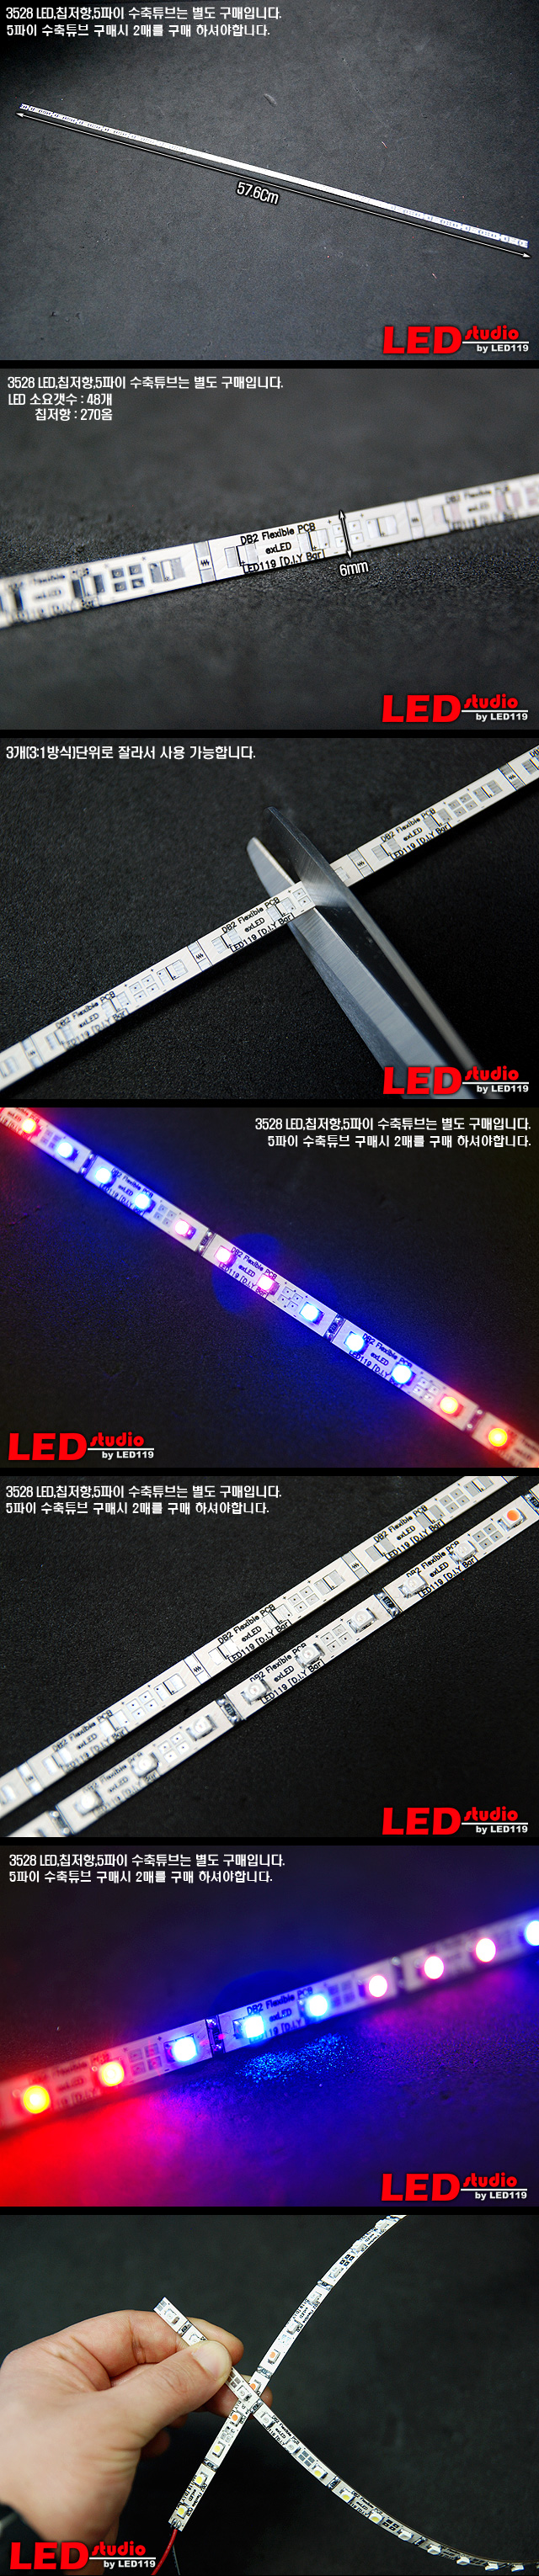 exLED DB2 Flexible D.I.Y Bar PCB (57.6Cm) (화이트/블랙)